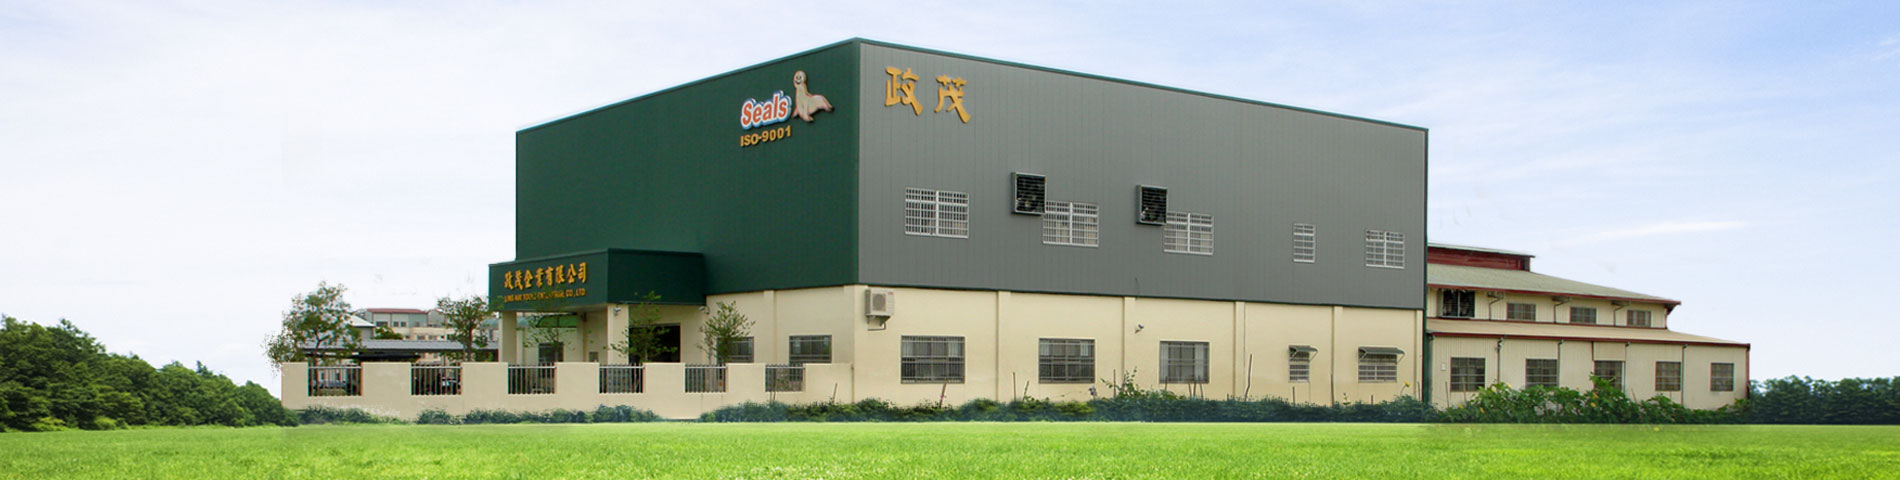 Professional manufacturer with over 30 years experience